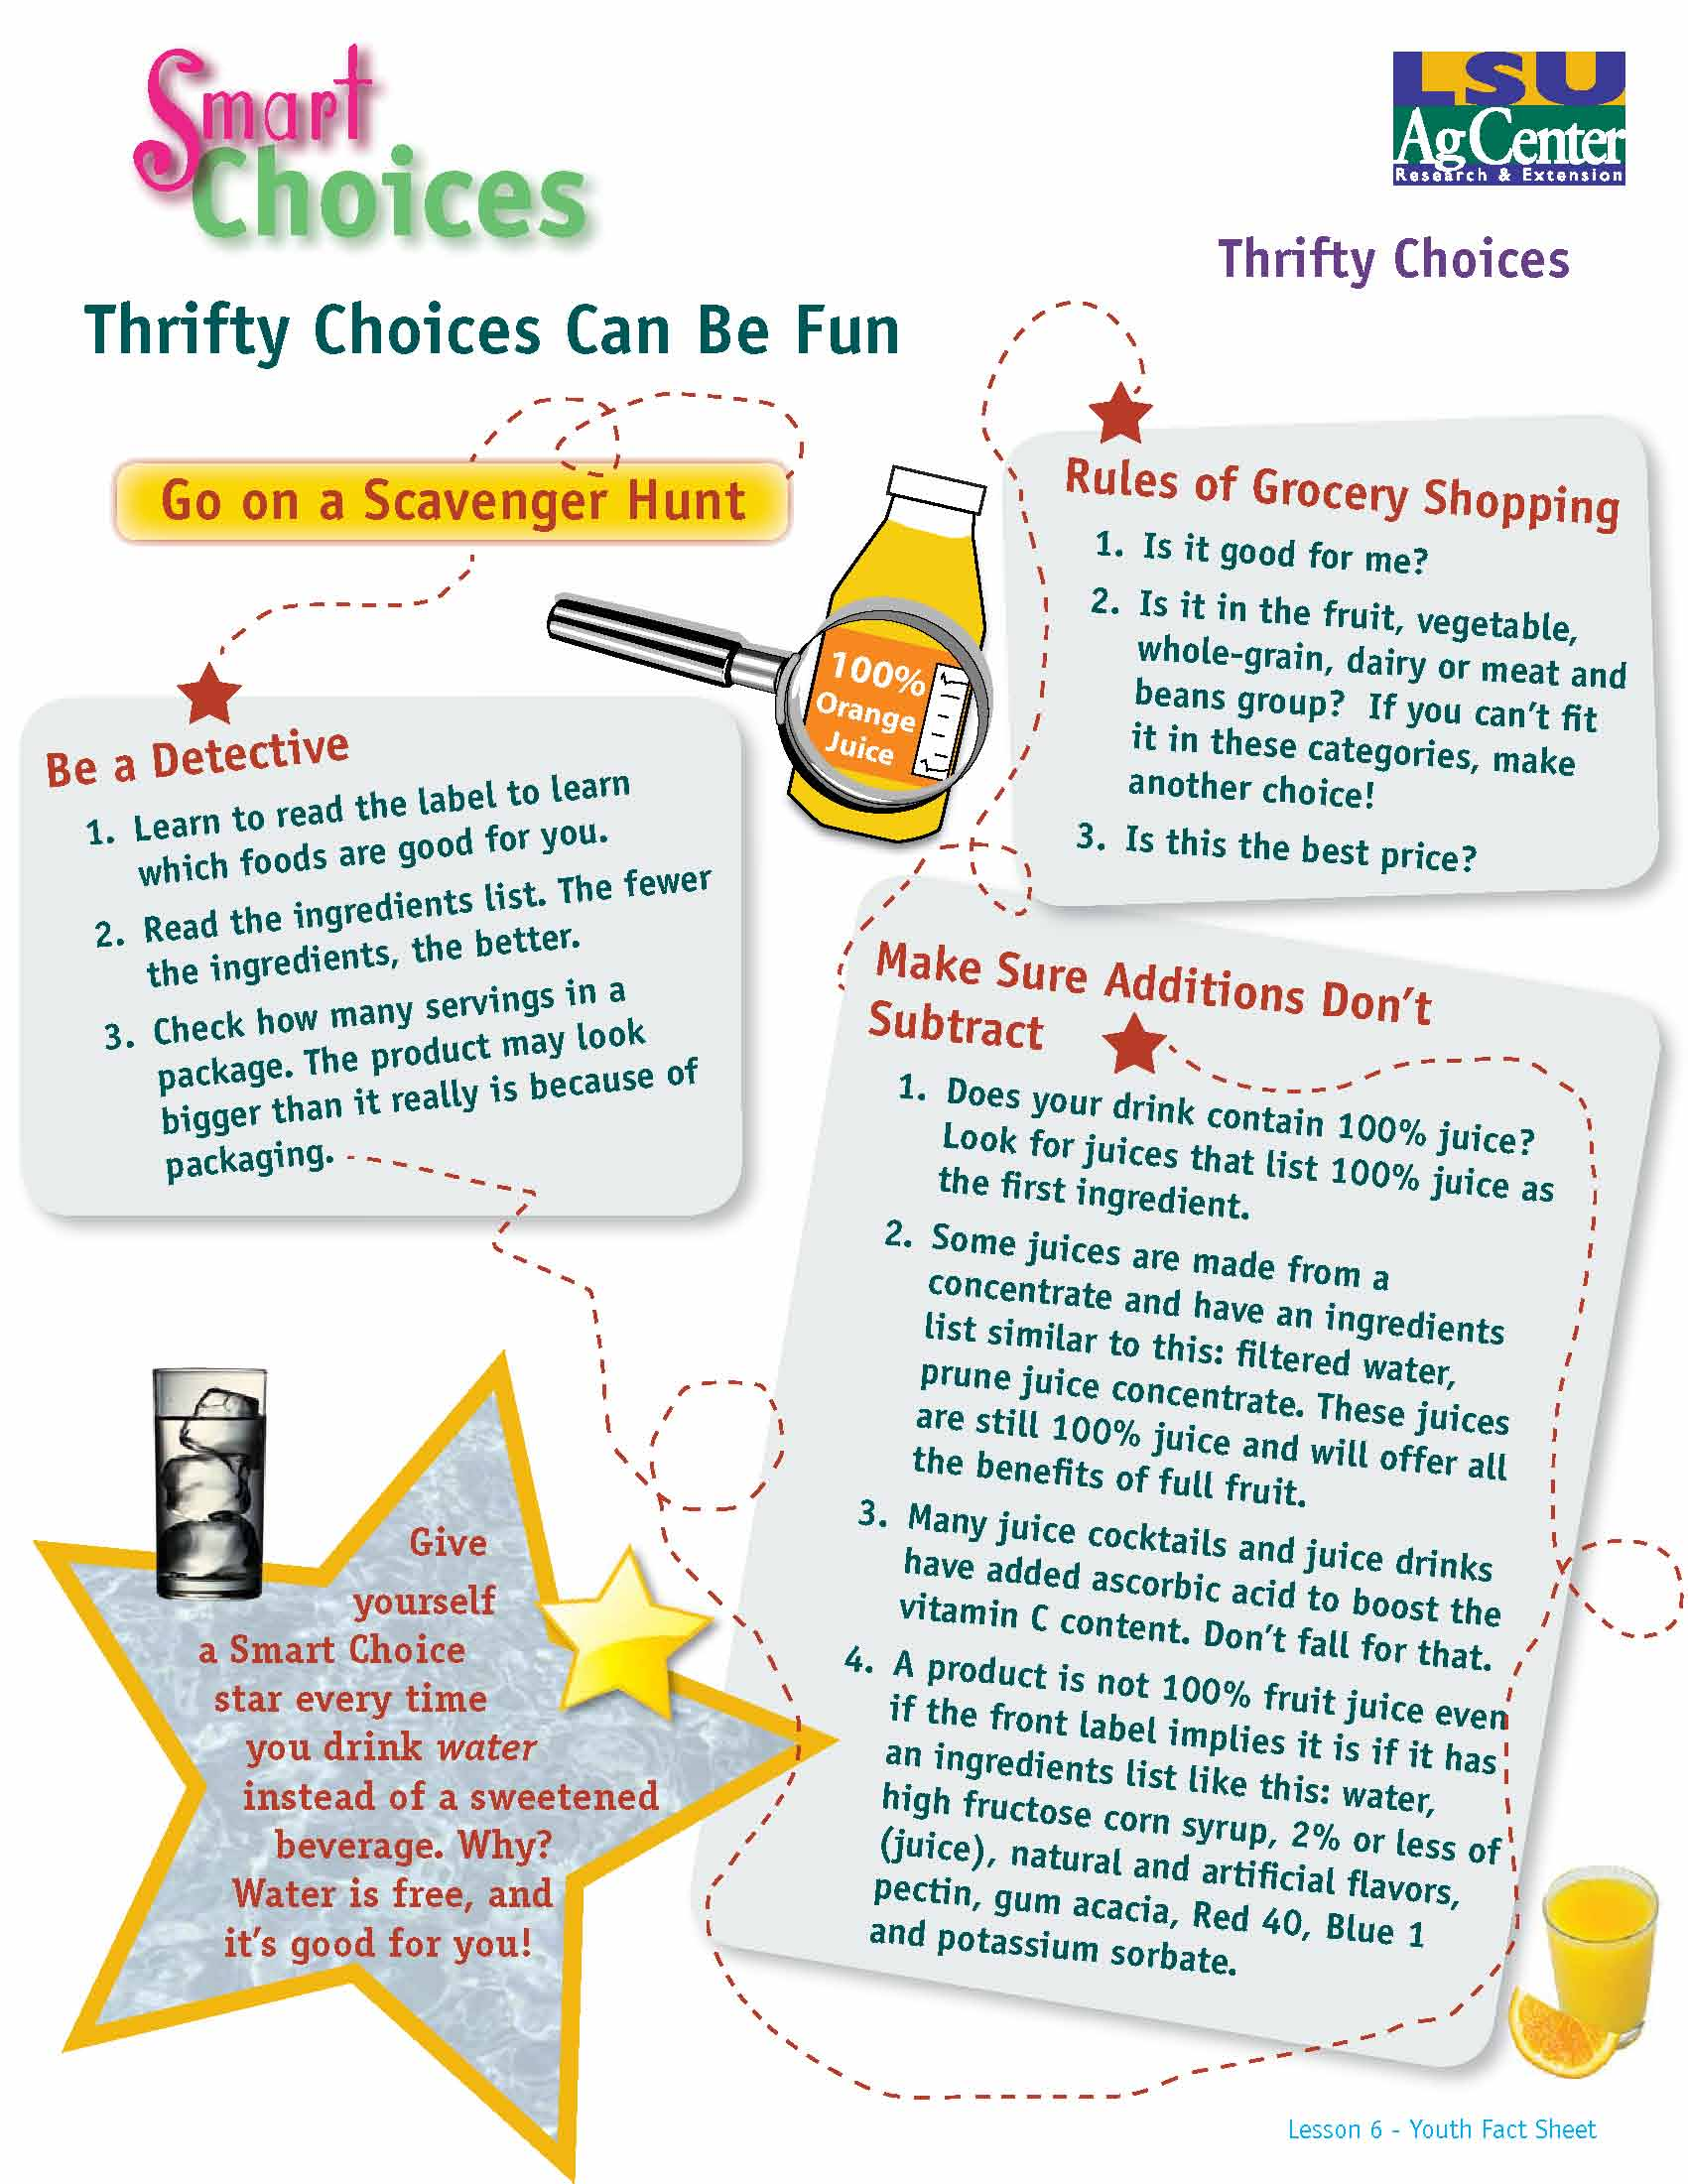 Smart Choices:  Thrifty Choices Can Be Fun